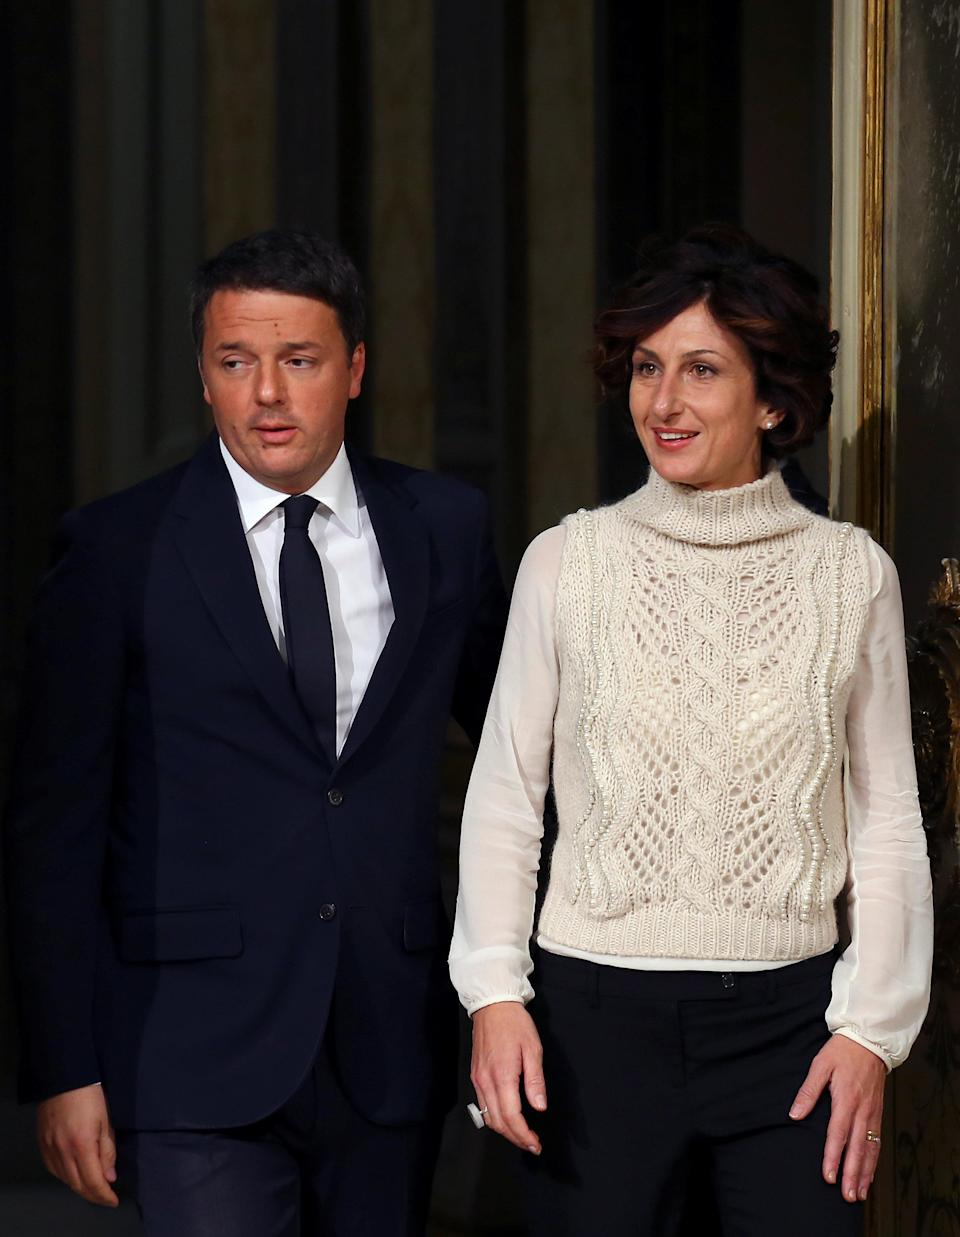 Italian Prime Minister Matteo Renzi arrives with his wife Agnese before a media conference after a referendum on constitutional reform at Chigi palace in Rome, Italy, December 5, 2016. REUTERS/Alessandro Bianchi